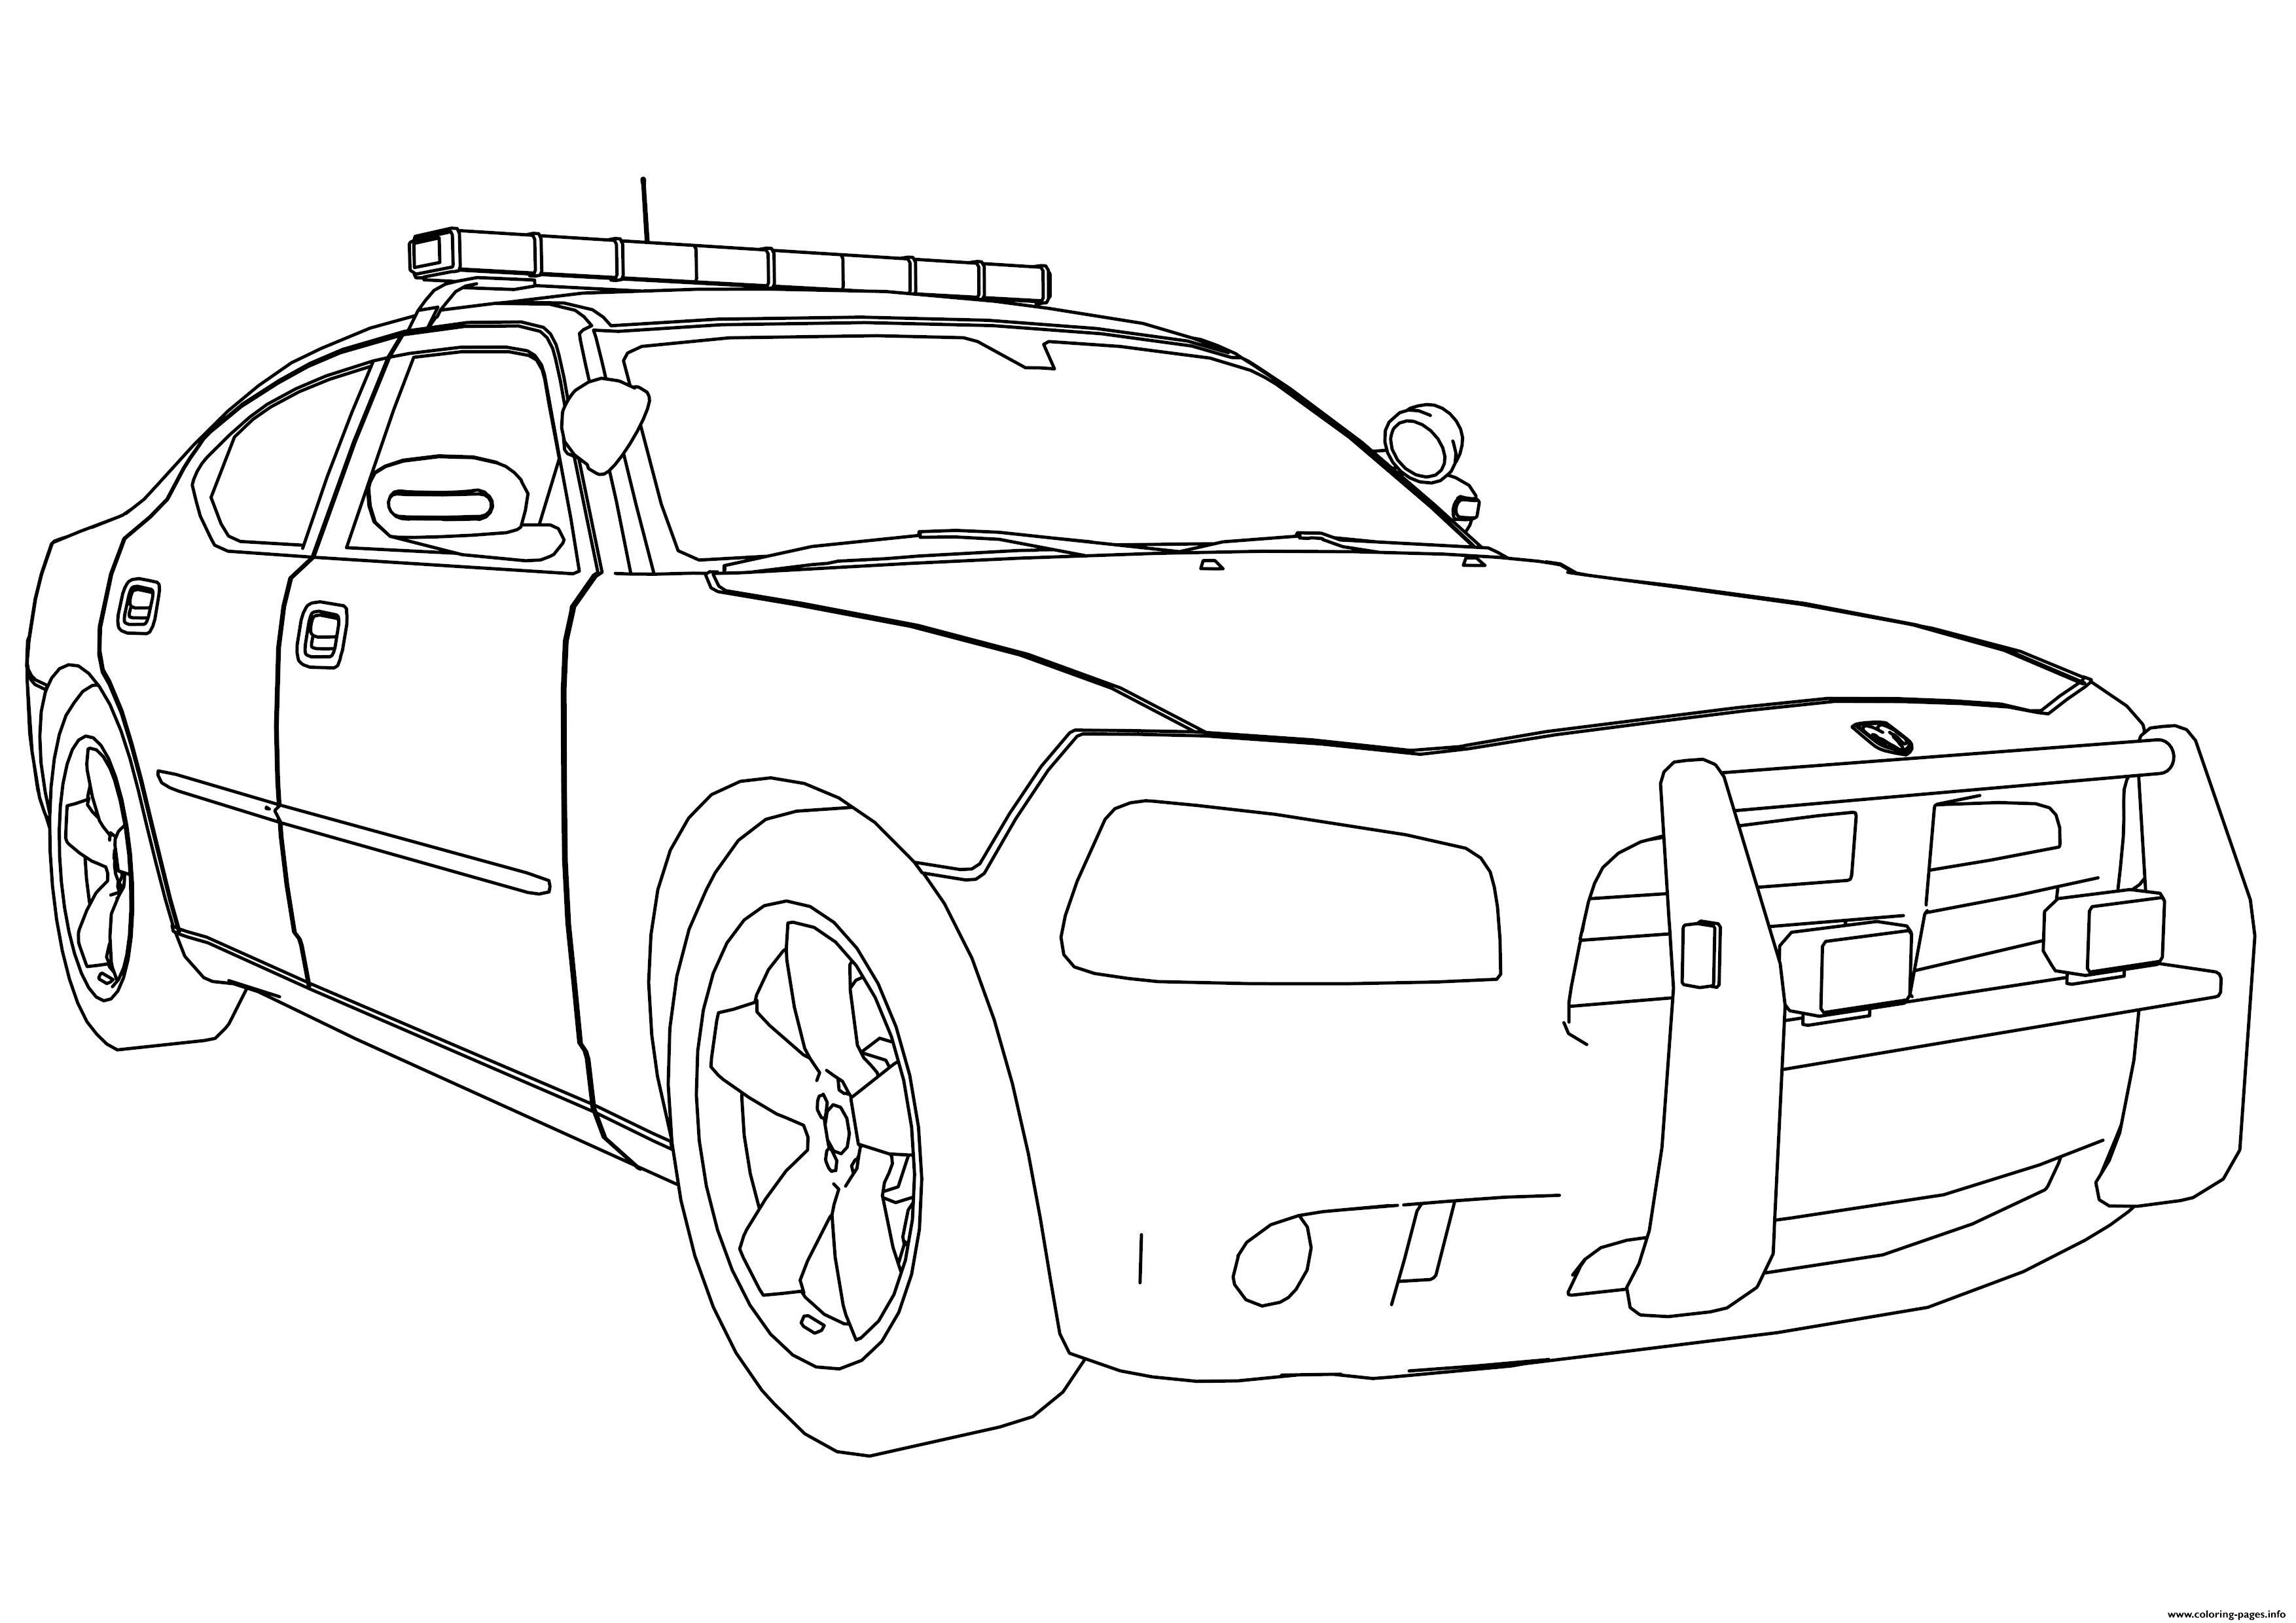 police car coloring page # 12